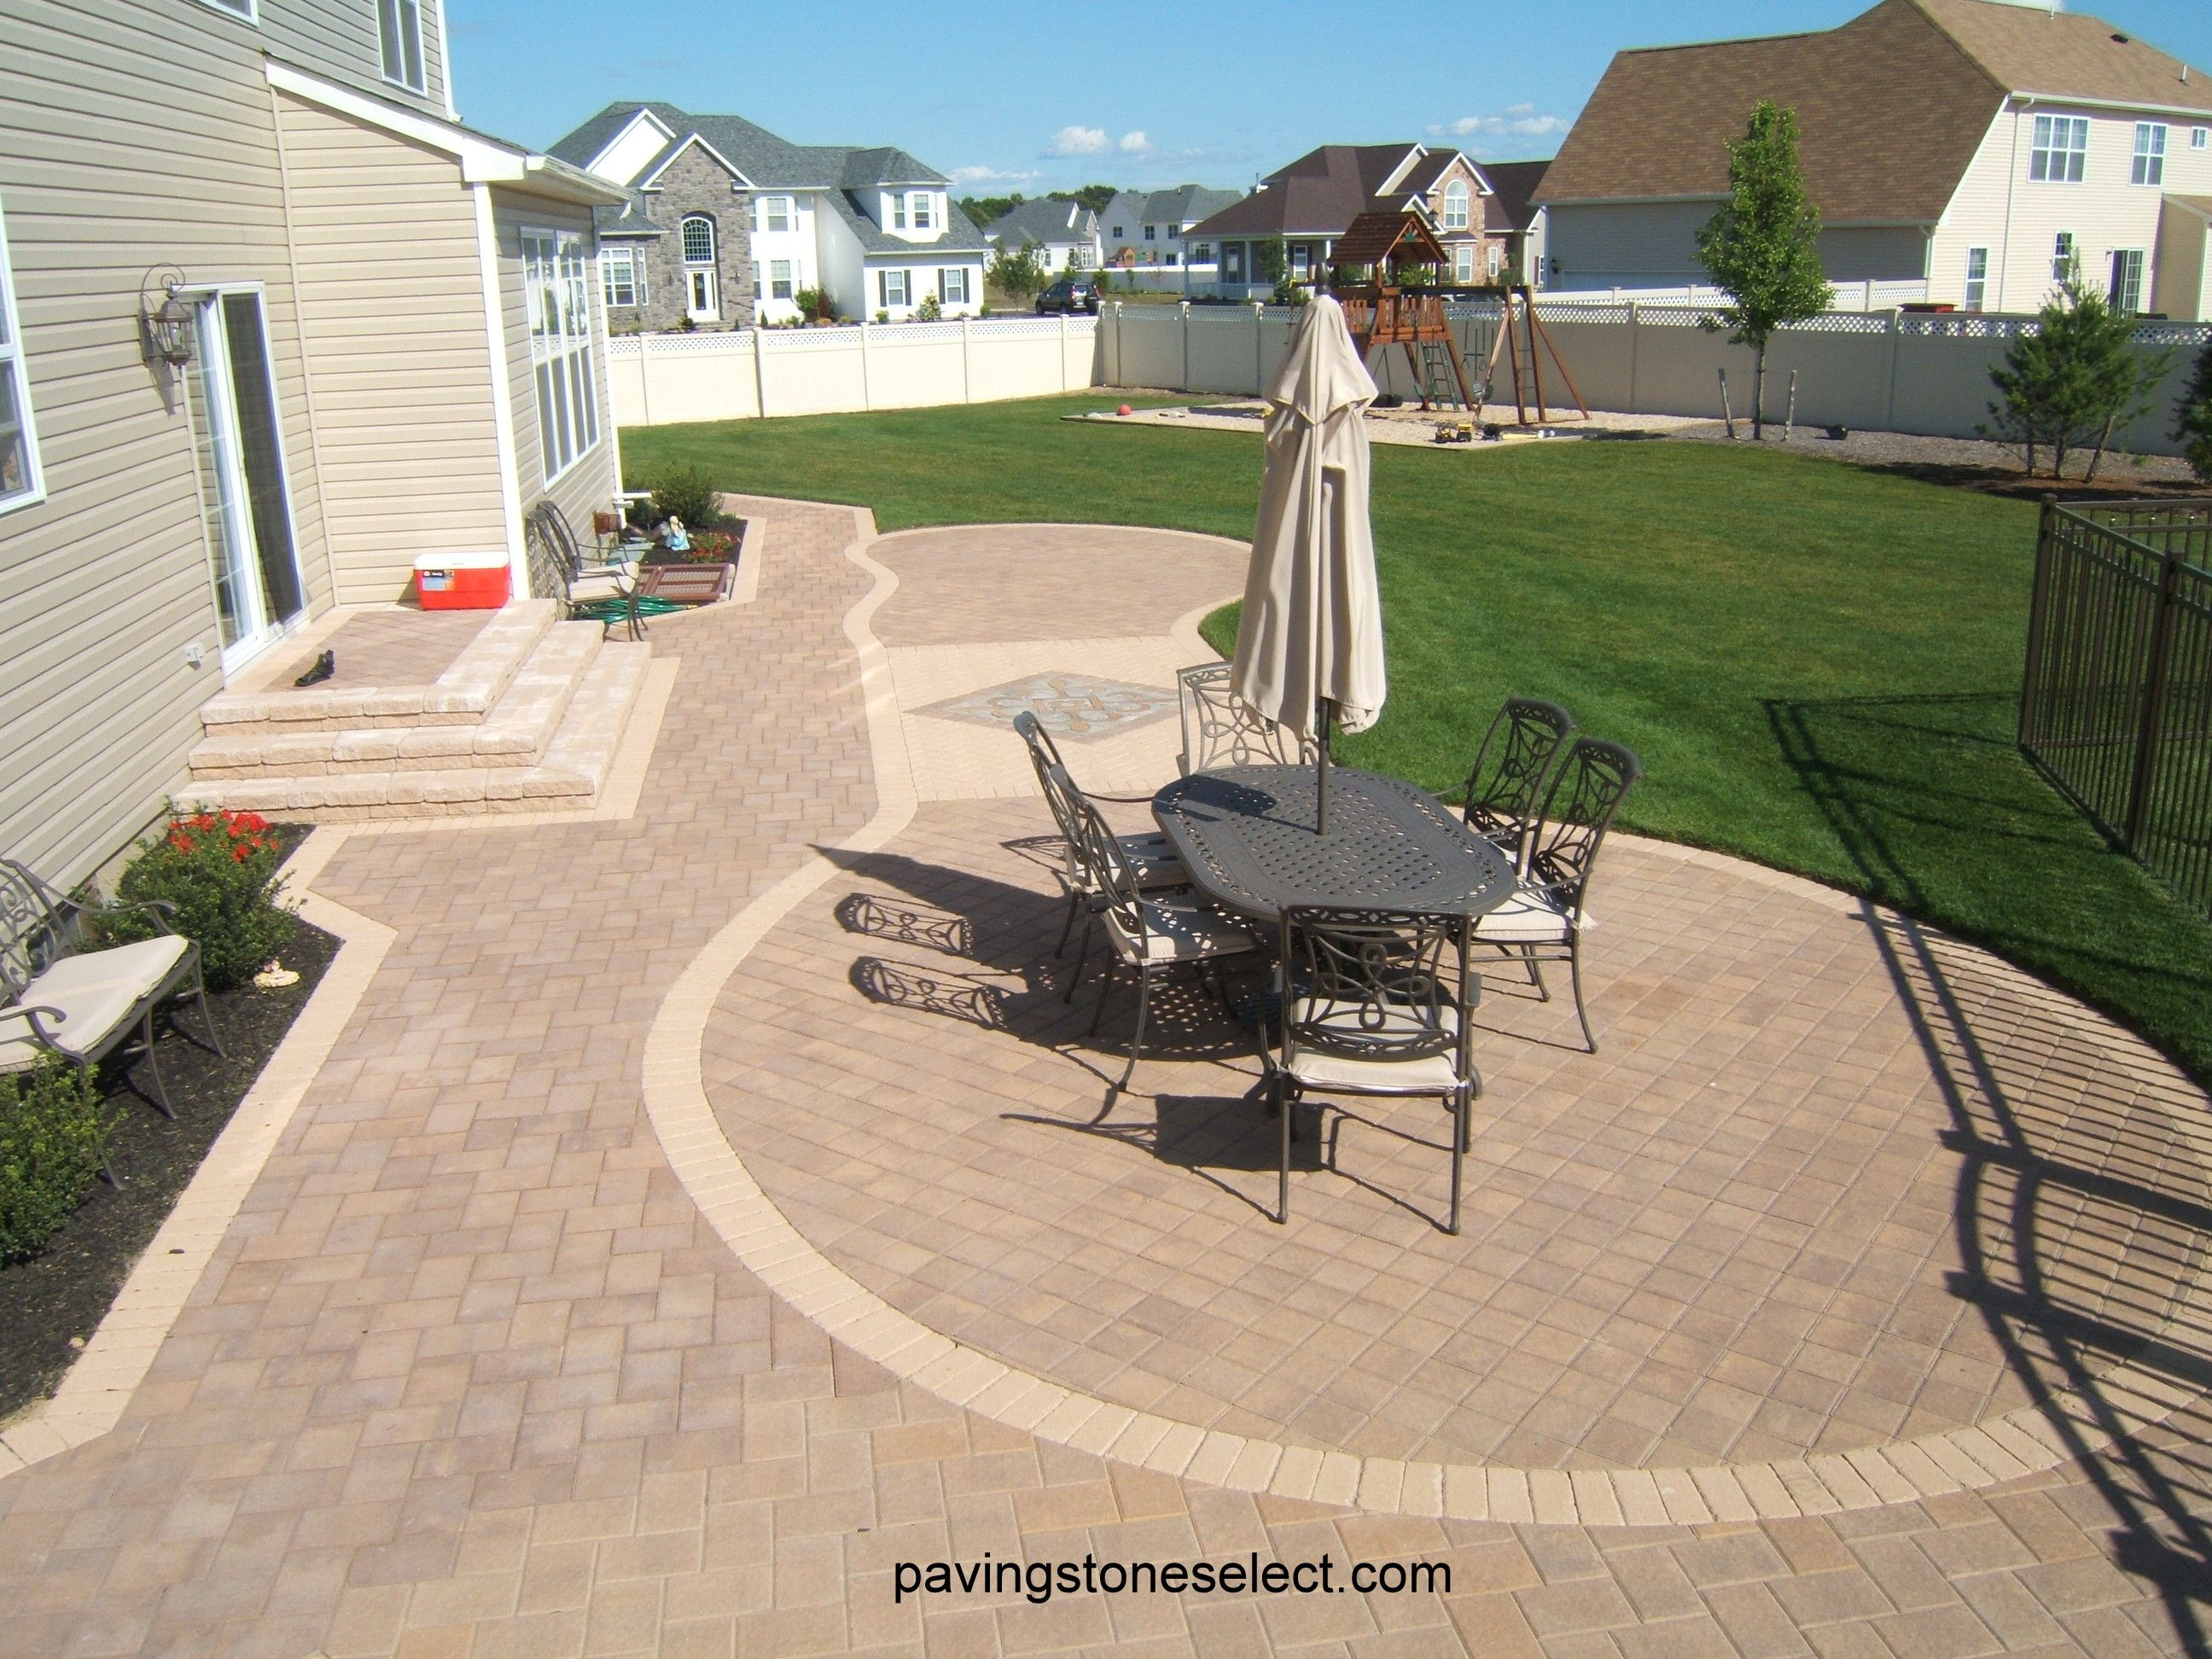 Http://deckandpationaturalstones.com/?pu003d3477 Golden Brown Pavers Patio  Installed In East End Long Island Built With Nicolock Pavers On 1u201d Of Sand  Over ...